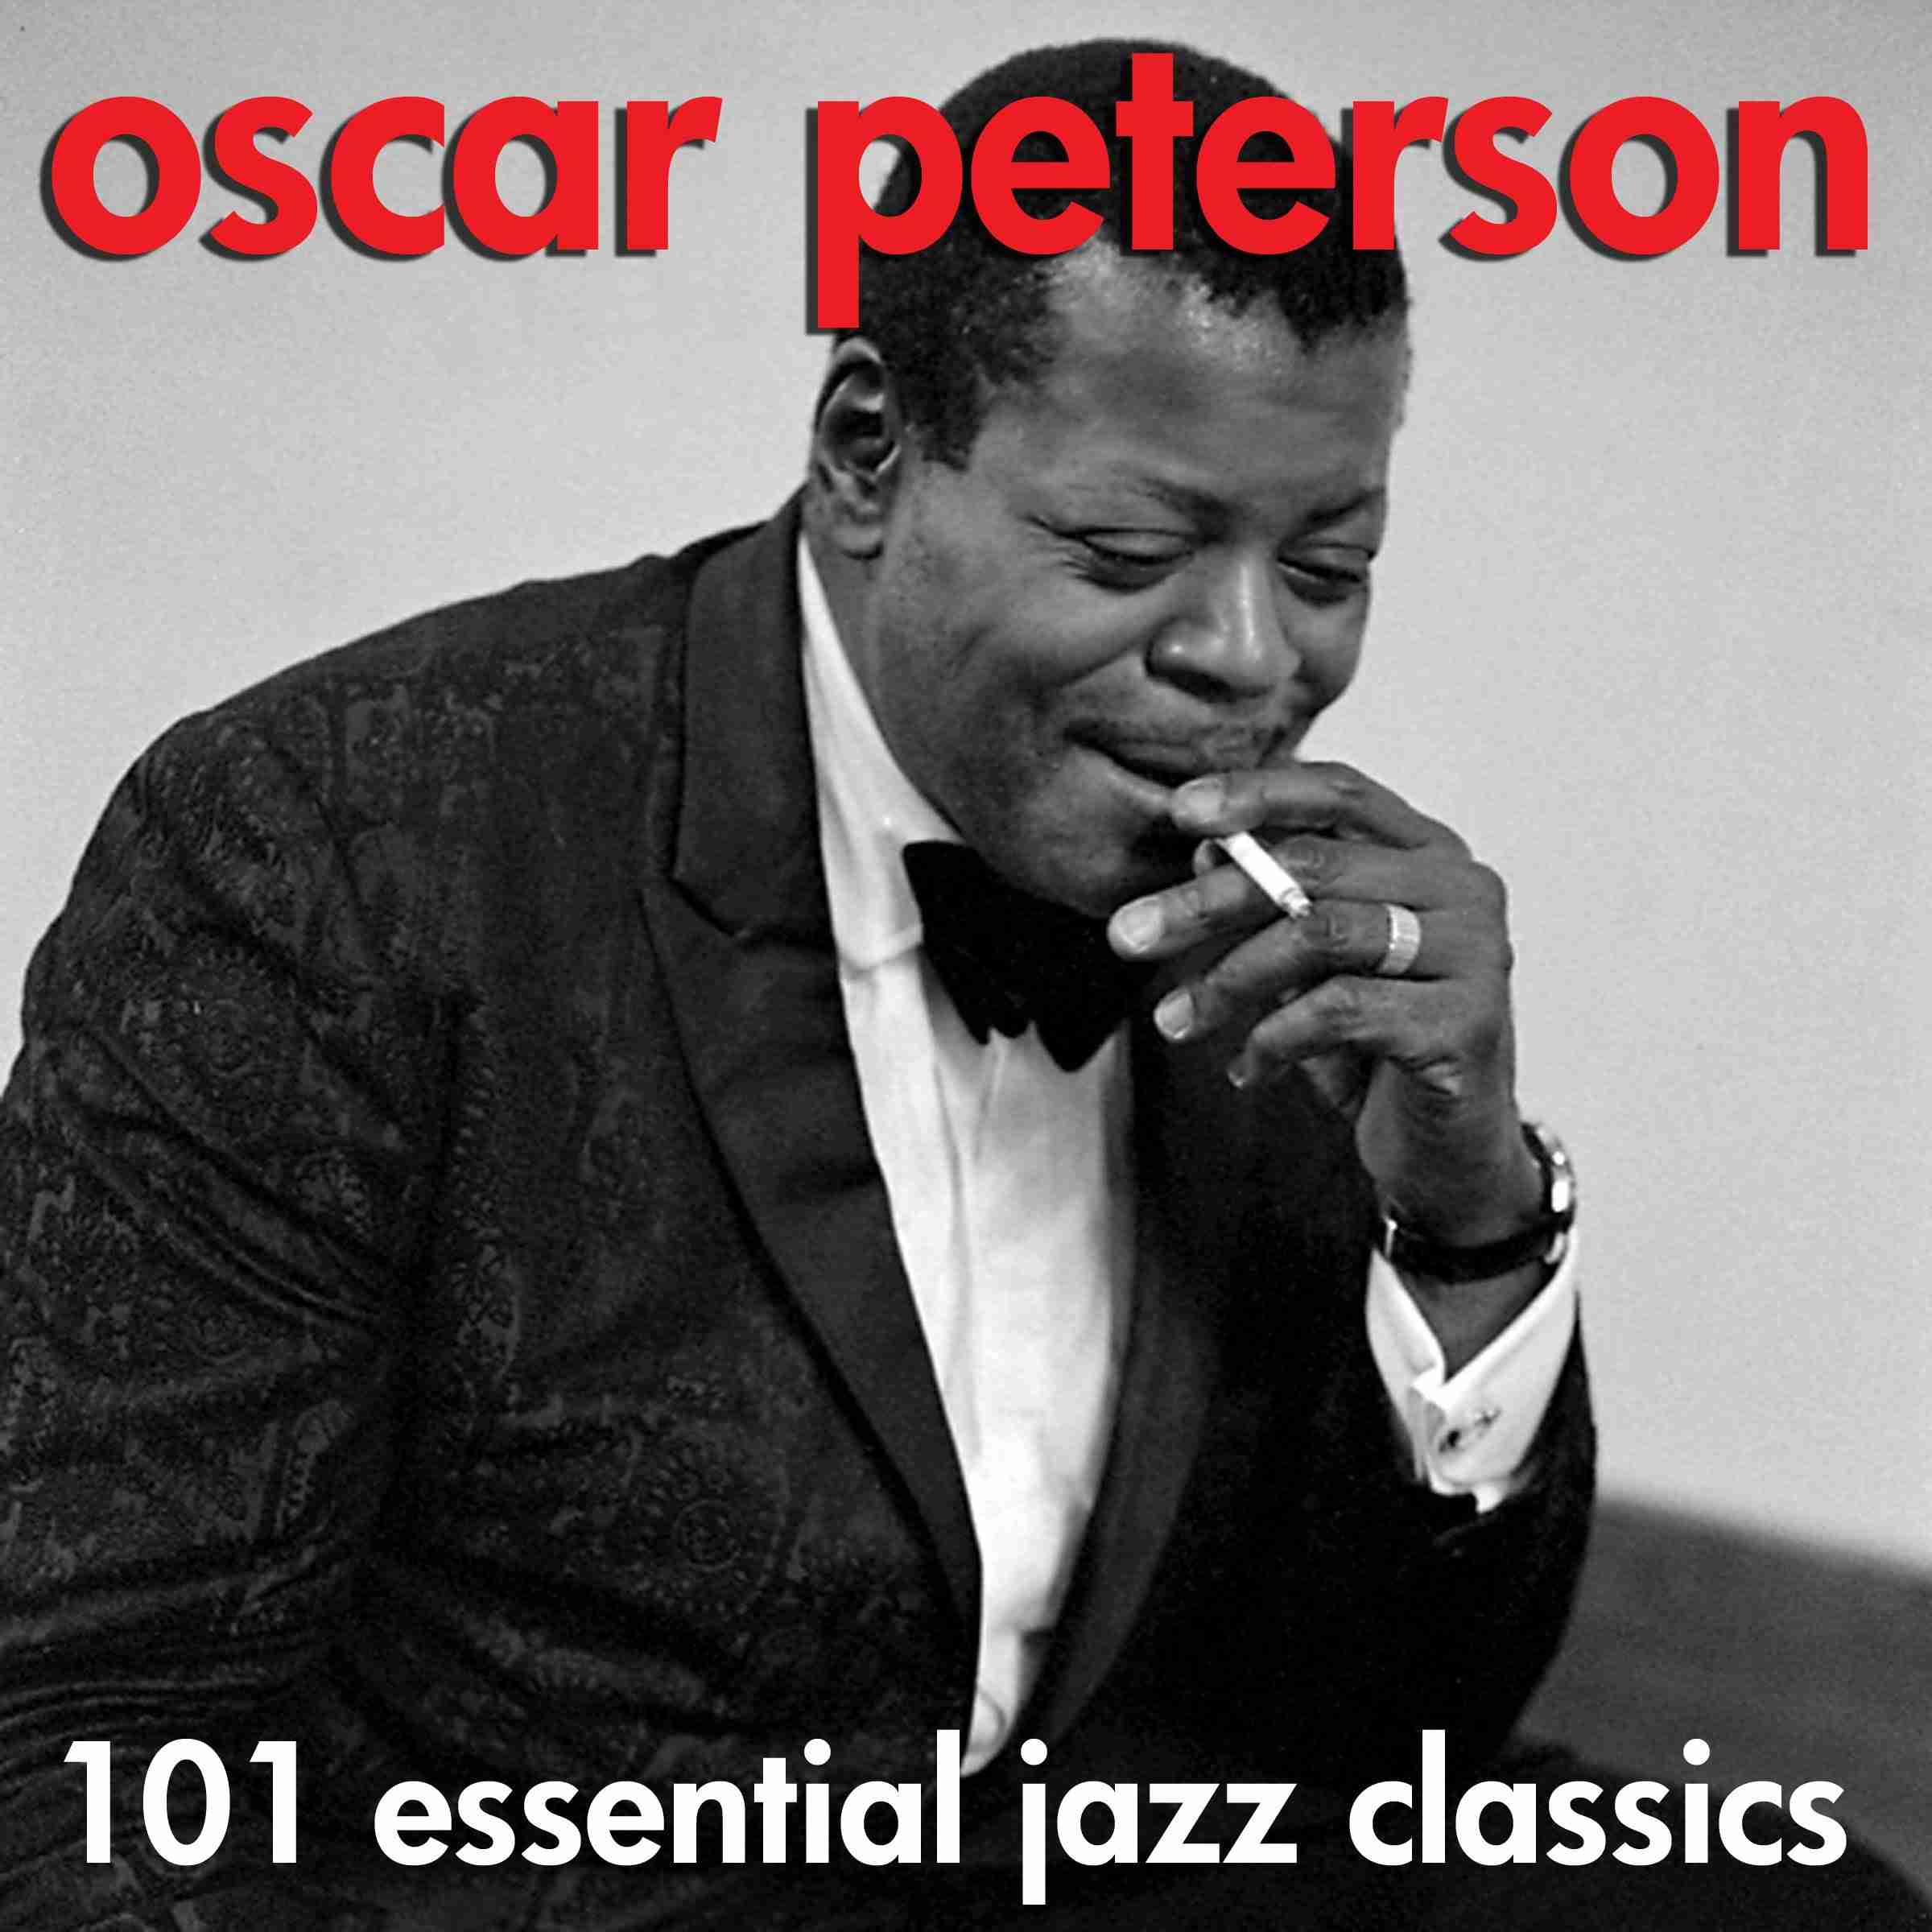 Oscar Peterson - 101 Essential Jazz Classics (AudioSonic Music) [Full Album] - YouTube